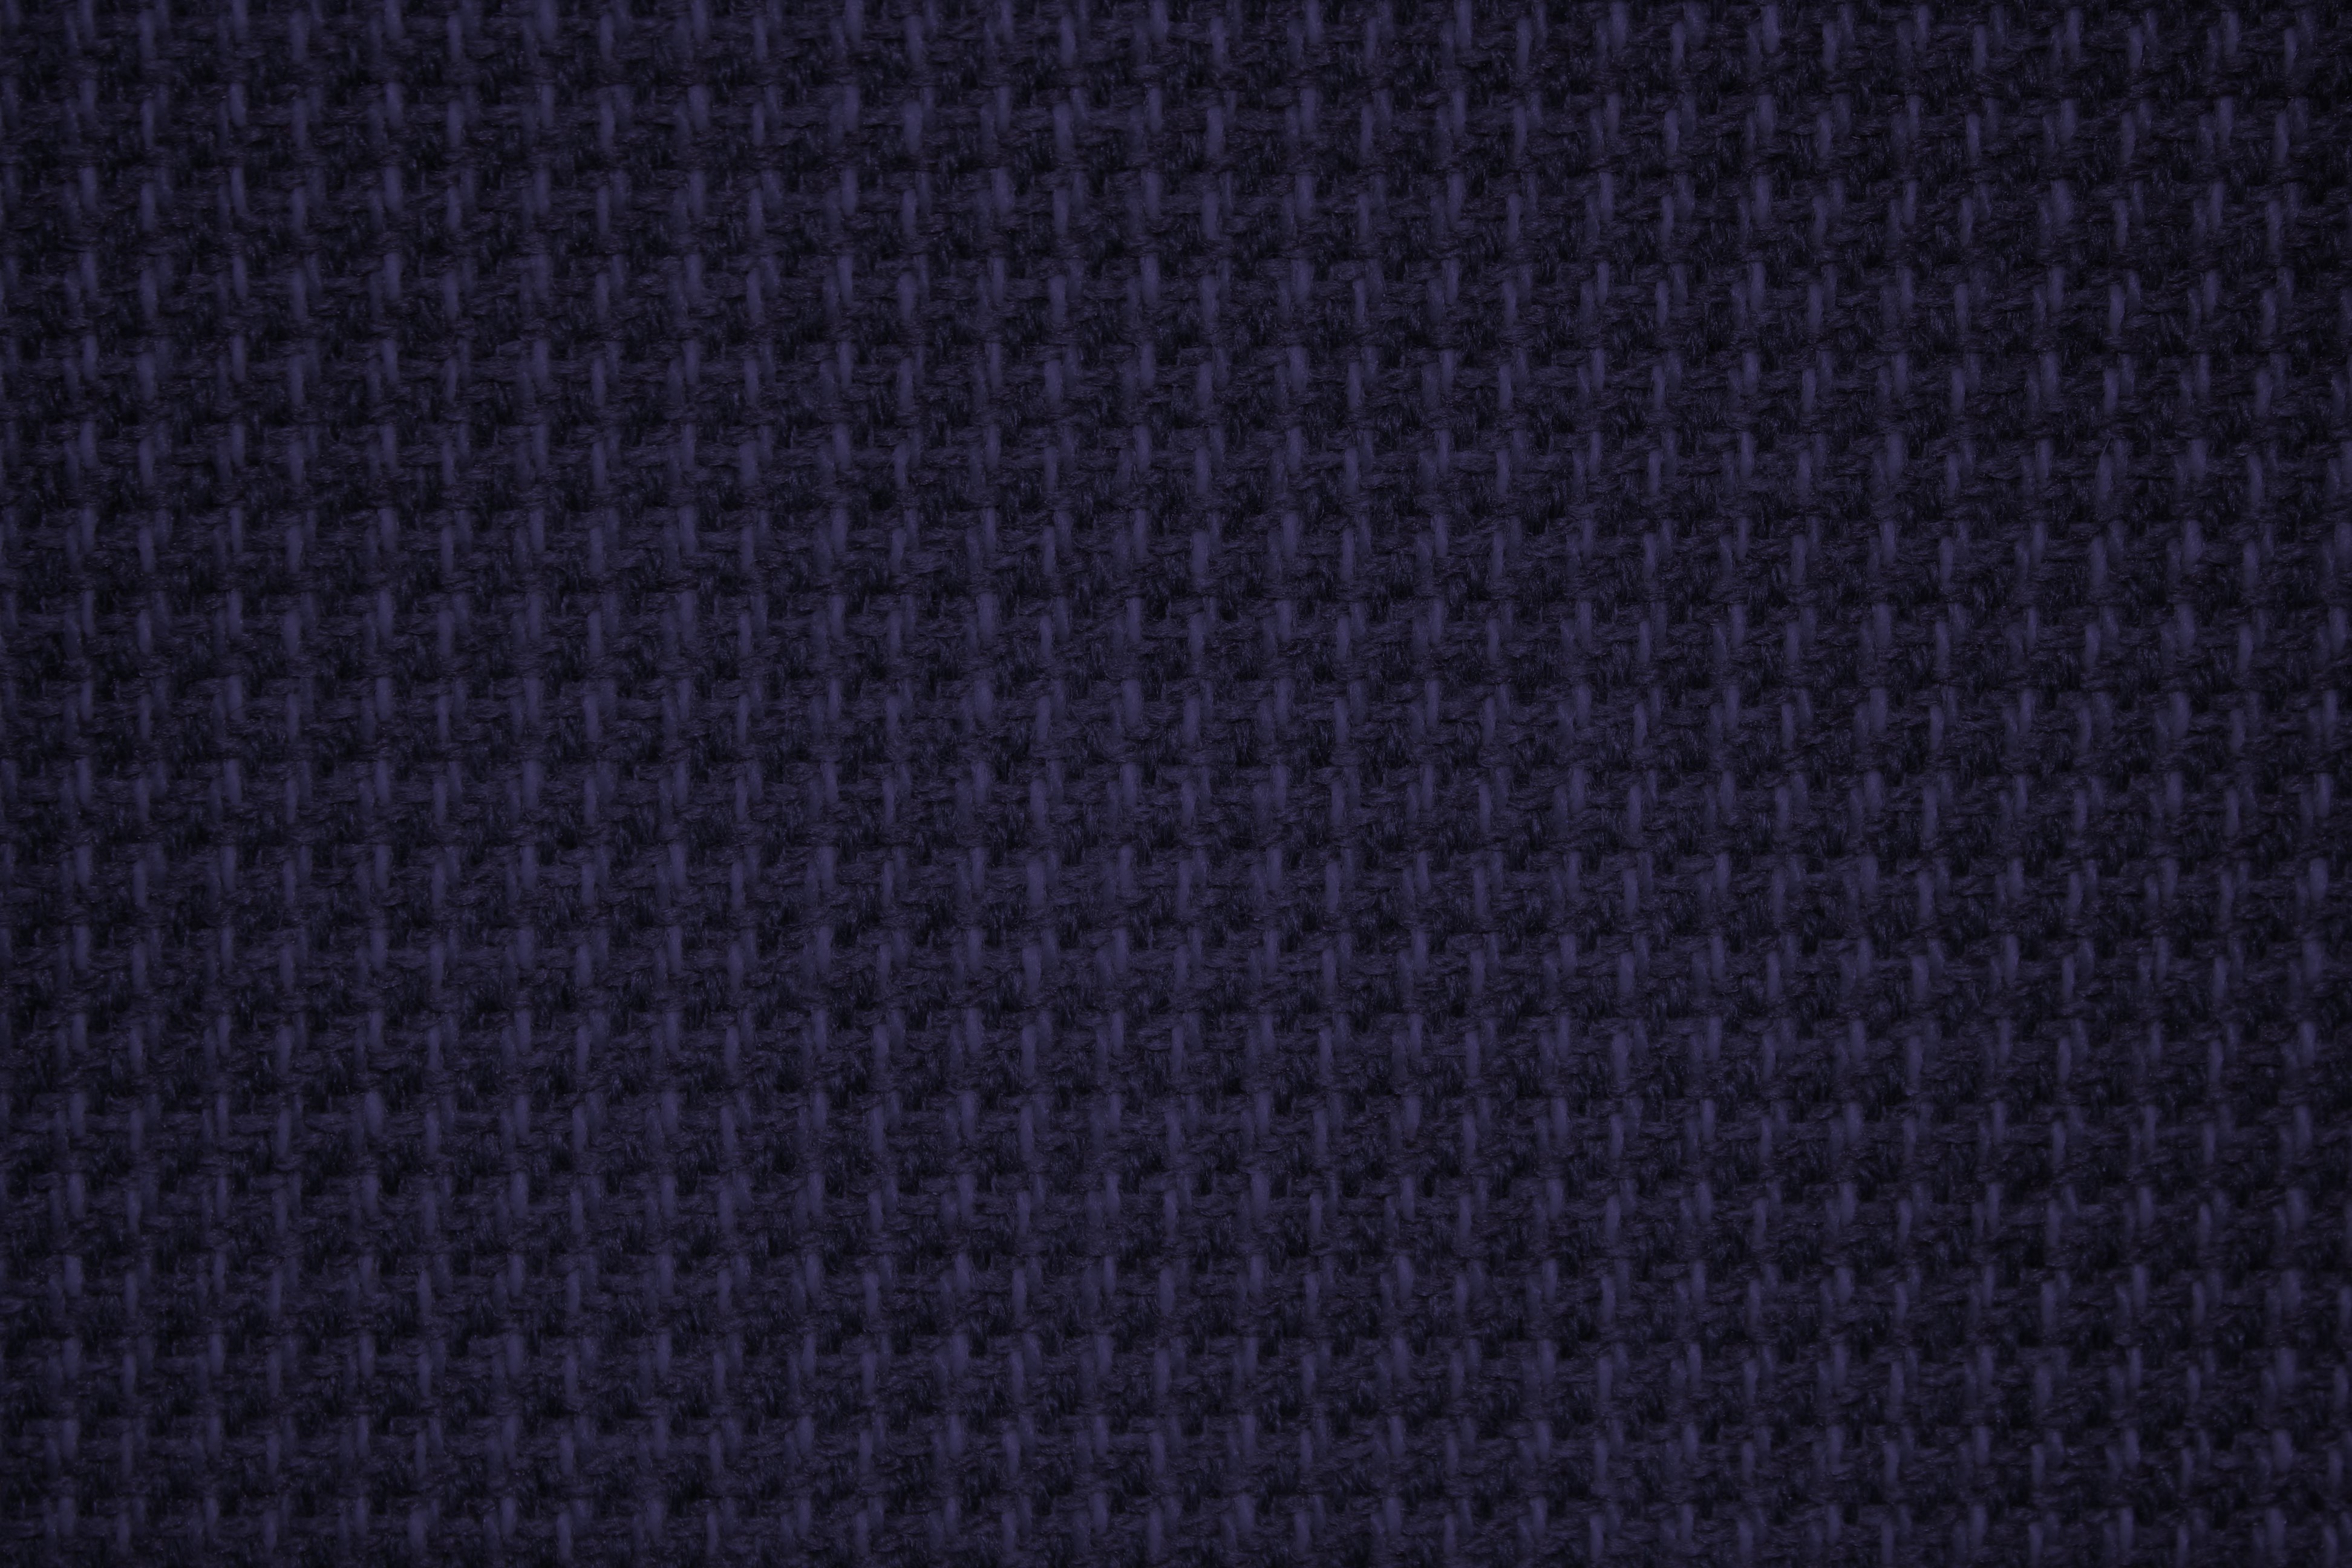 Navy Blue Upholstery Fabric Texture Picture Free